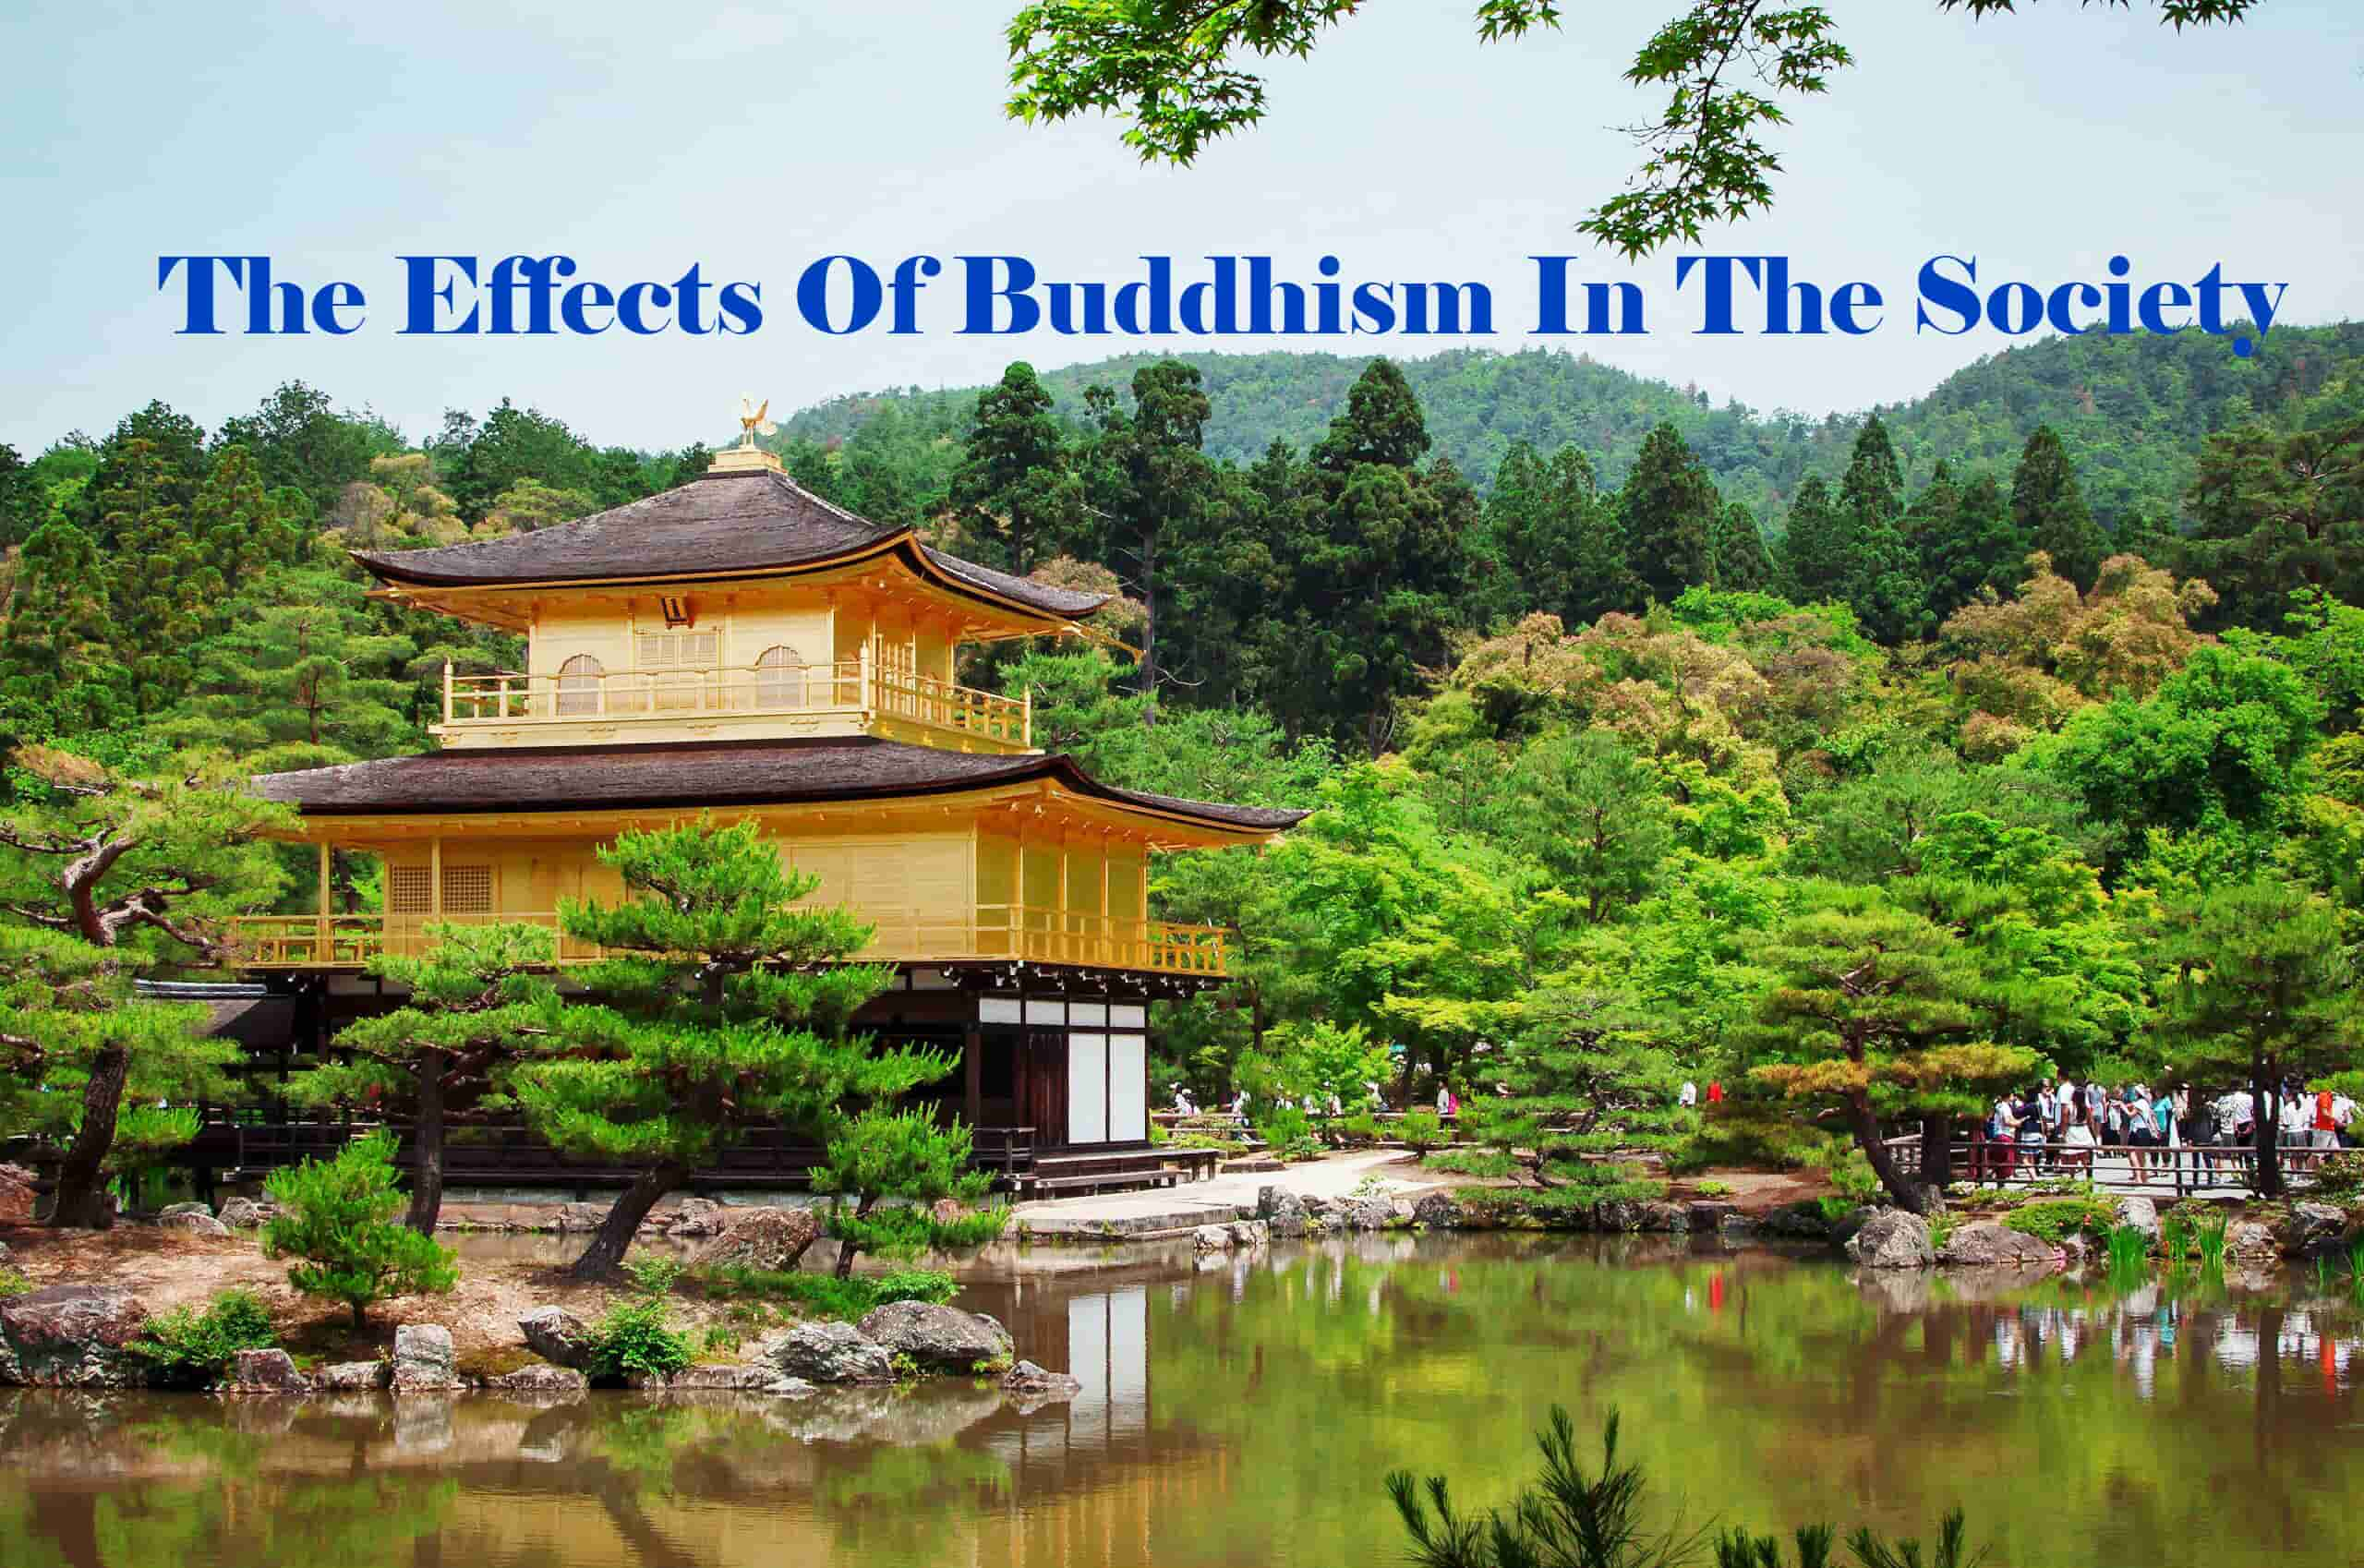 The Effects Of Buddhism In The Society